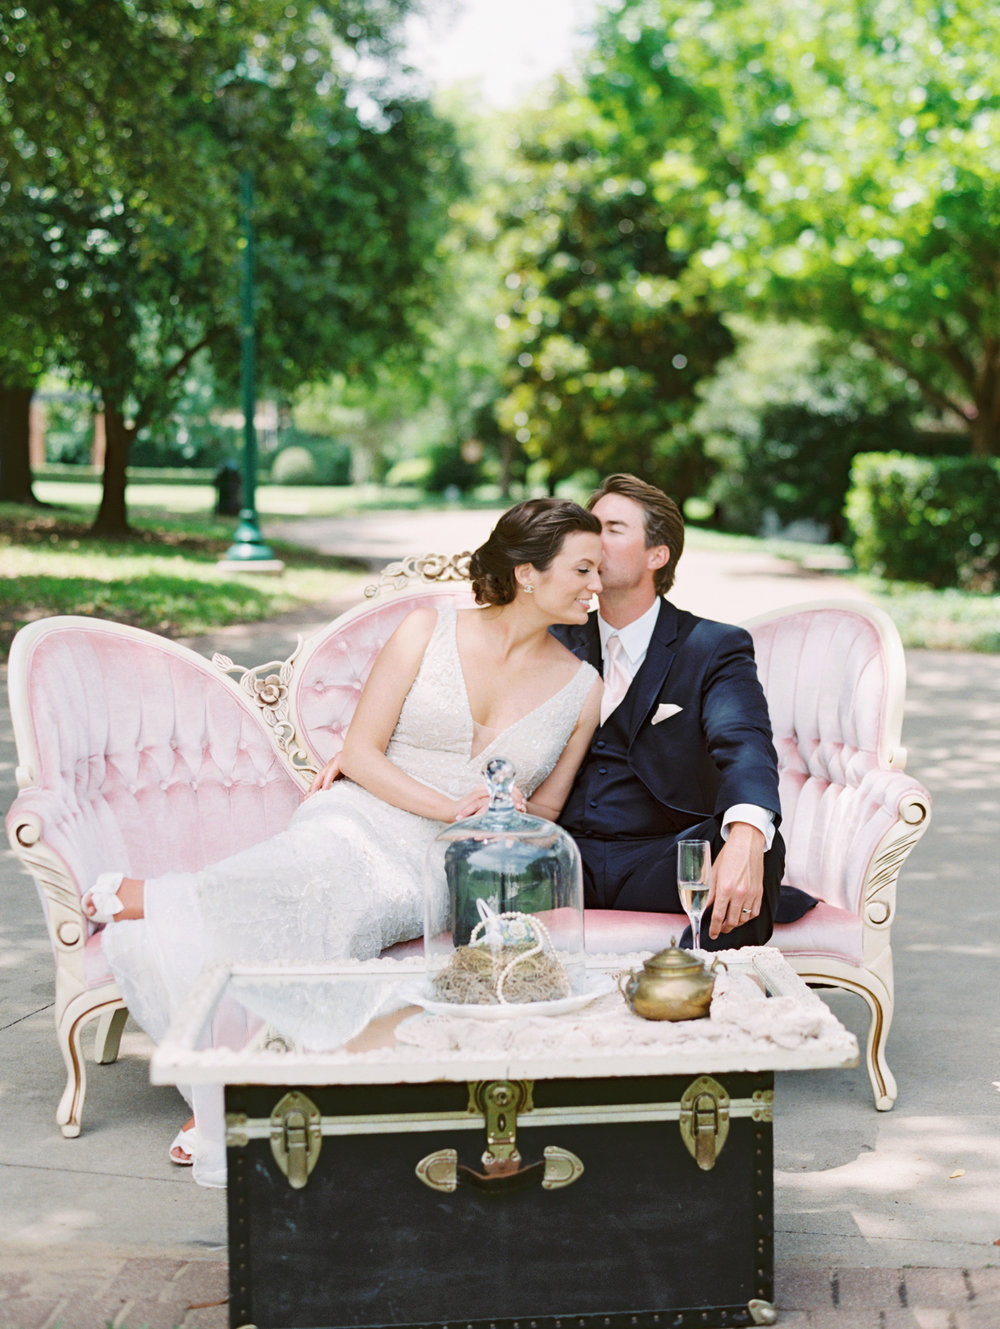 Meagan + Jacob = Brunch Garden Wedding at Arlington Hall.